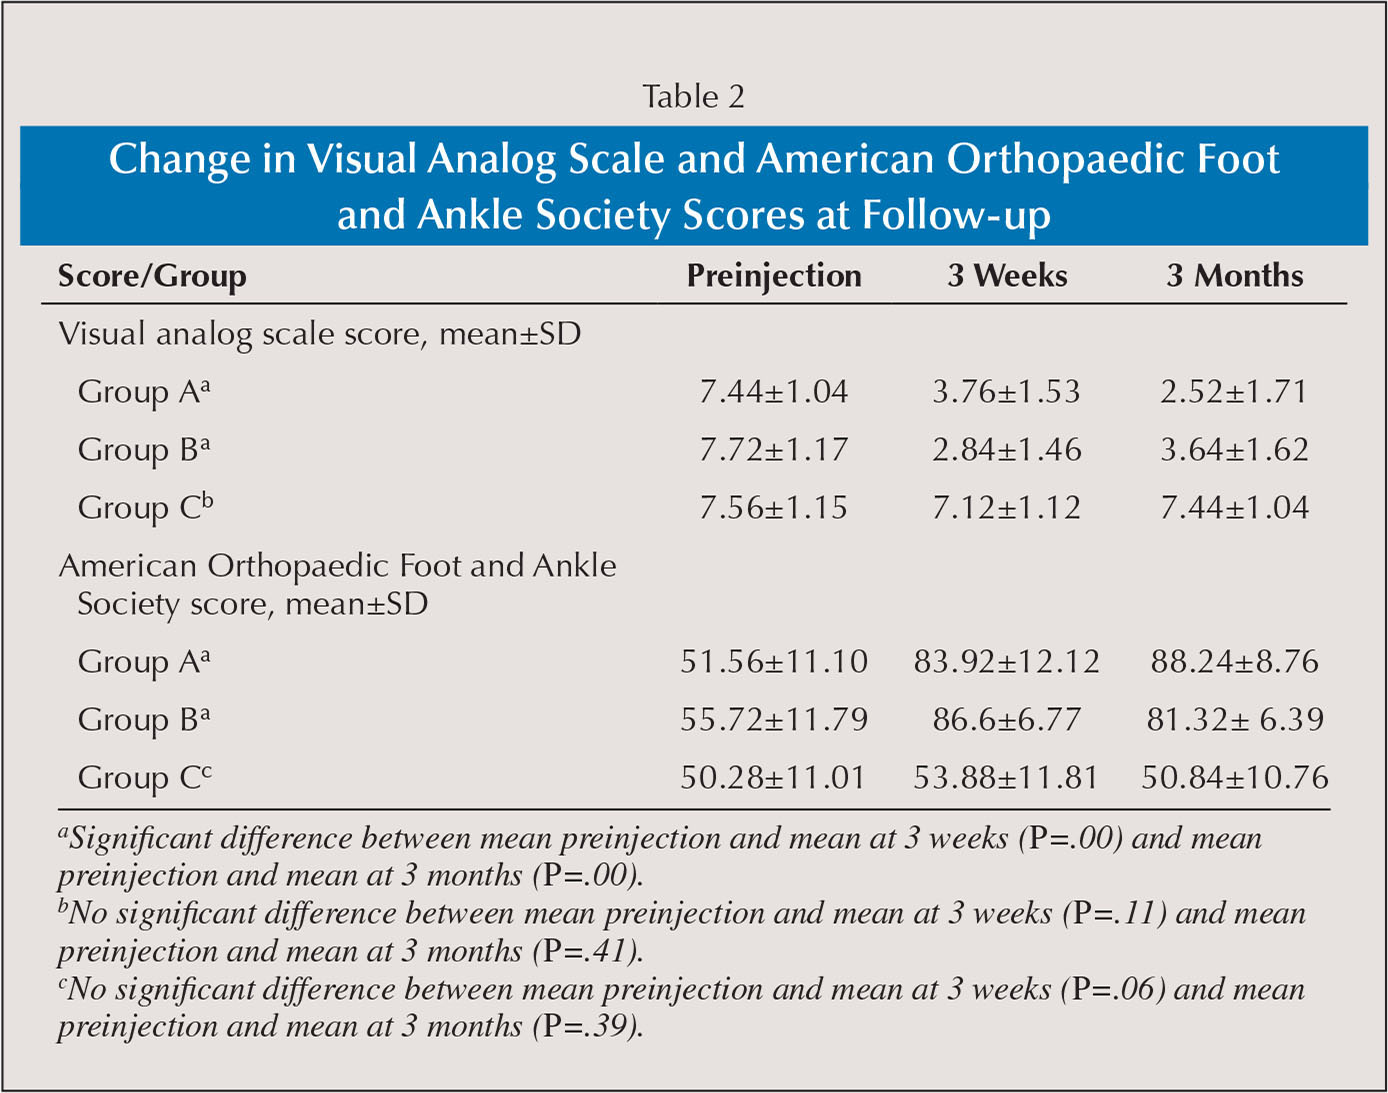 Change in Visual Analog Scale and American Orthopaedic Foot and Ankle Society Scores at Follow-up